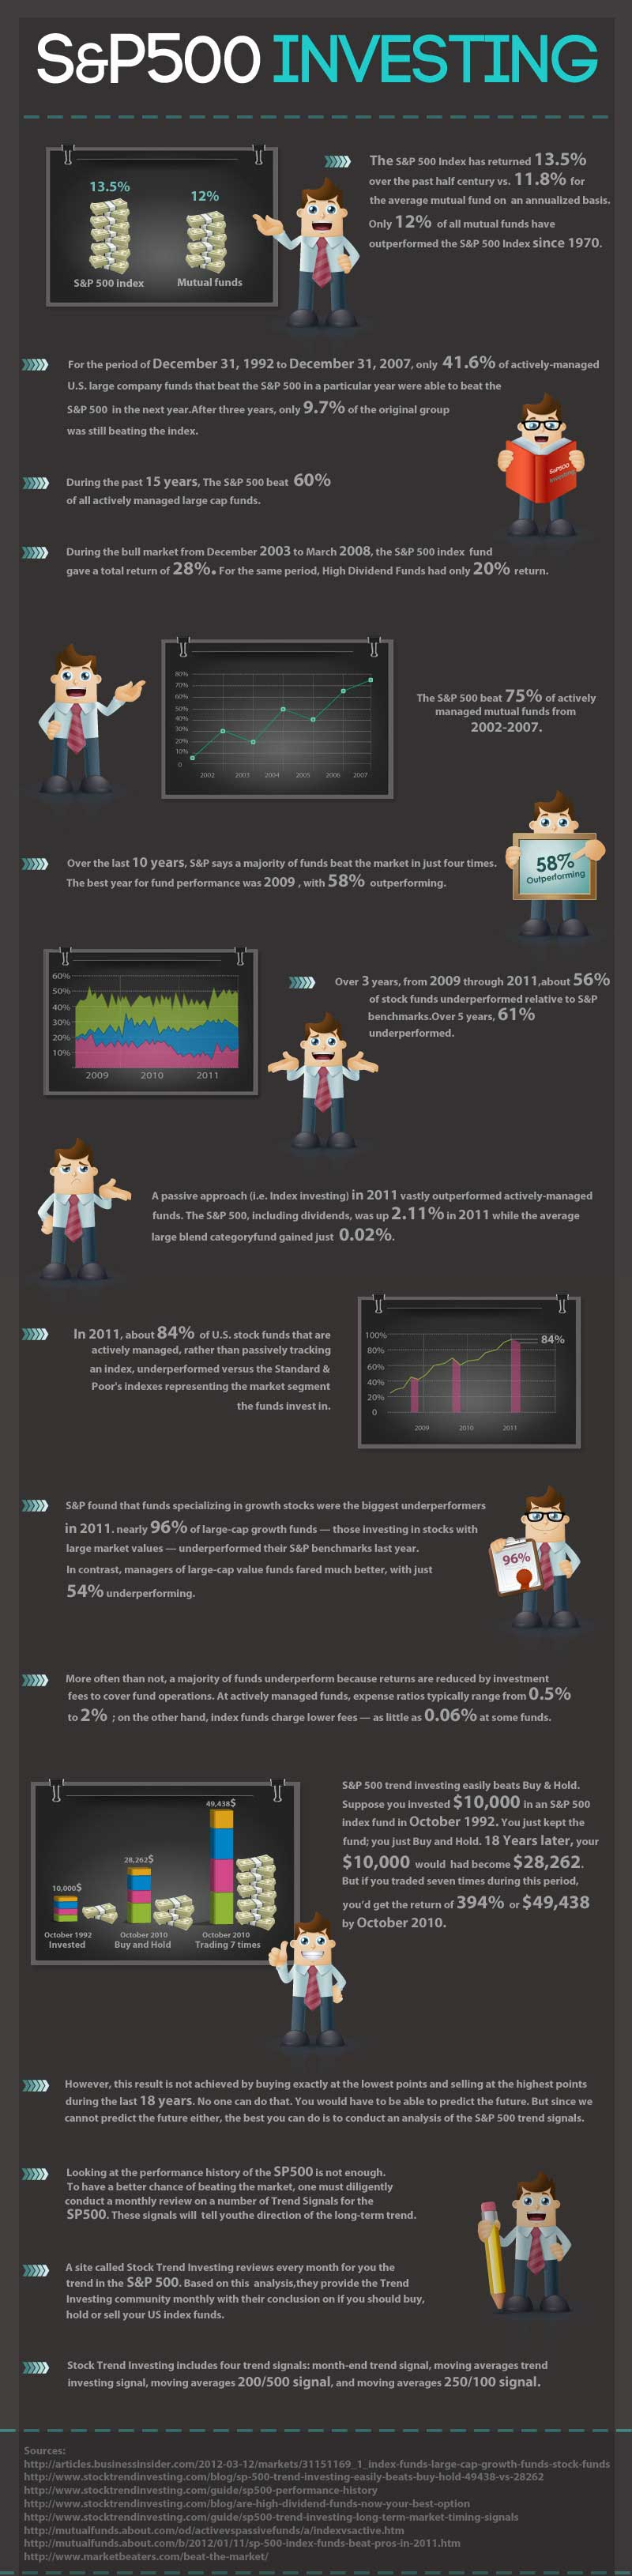 S&P 500 Stock Investing Infographic Large Version